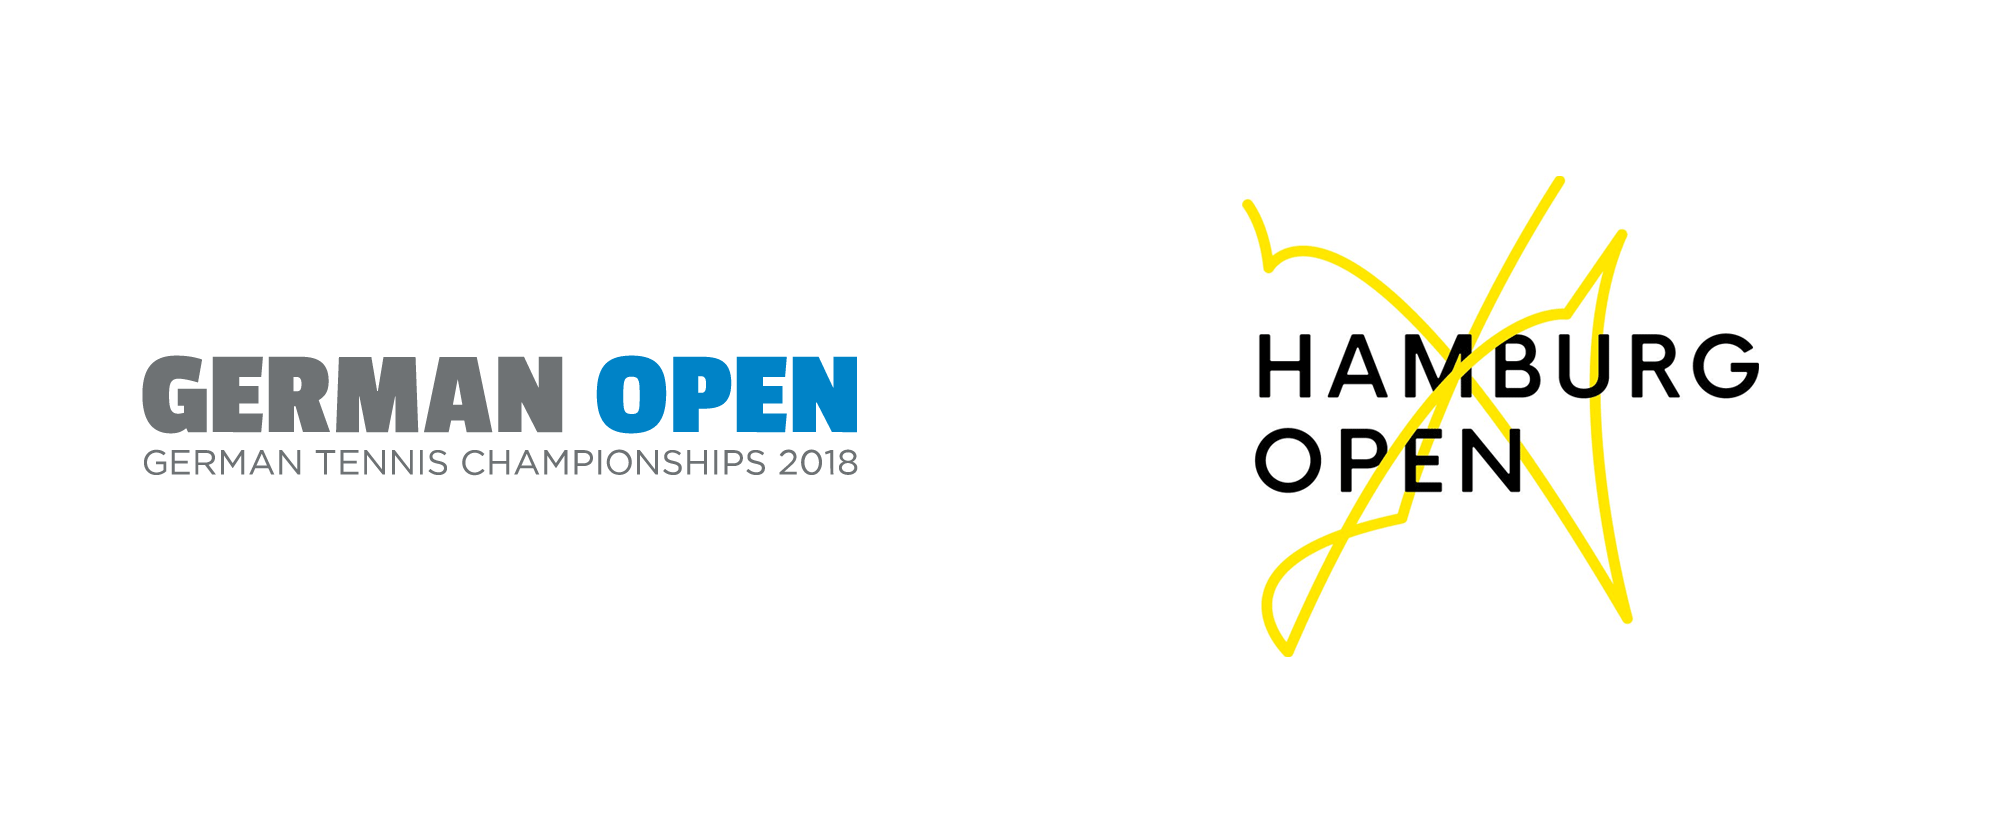 New Name and Logo for Hamburg European Open